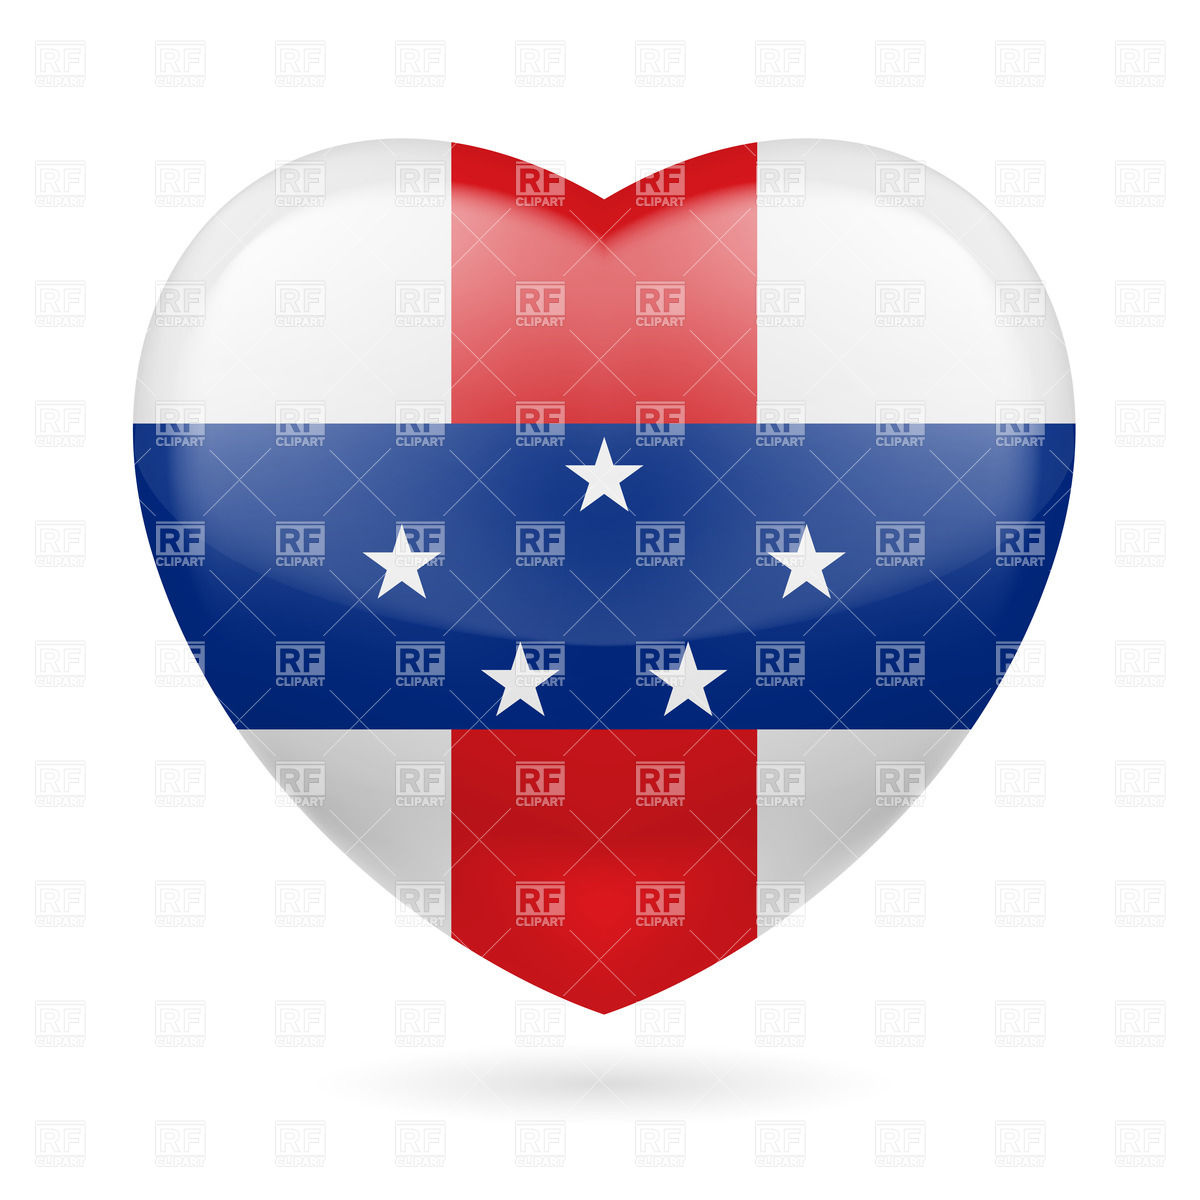 I love Netherlands Antilles. Heart with flag design Vector Image.